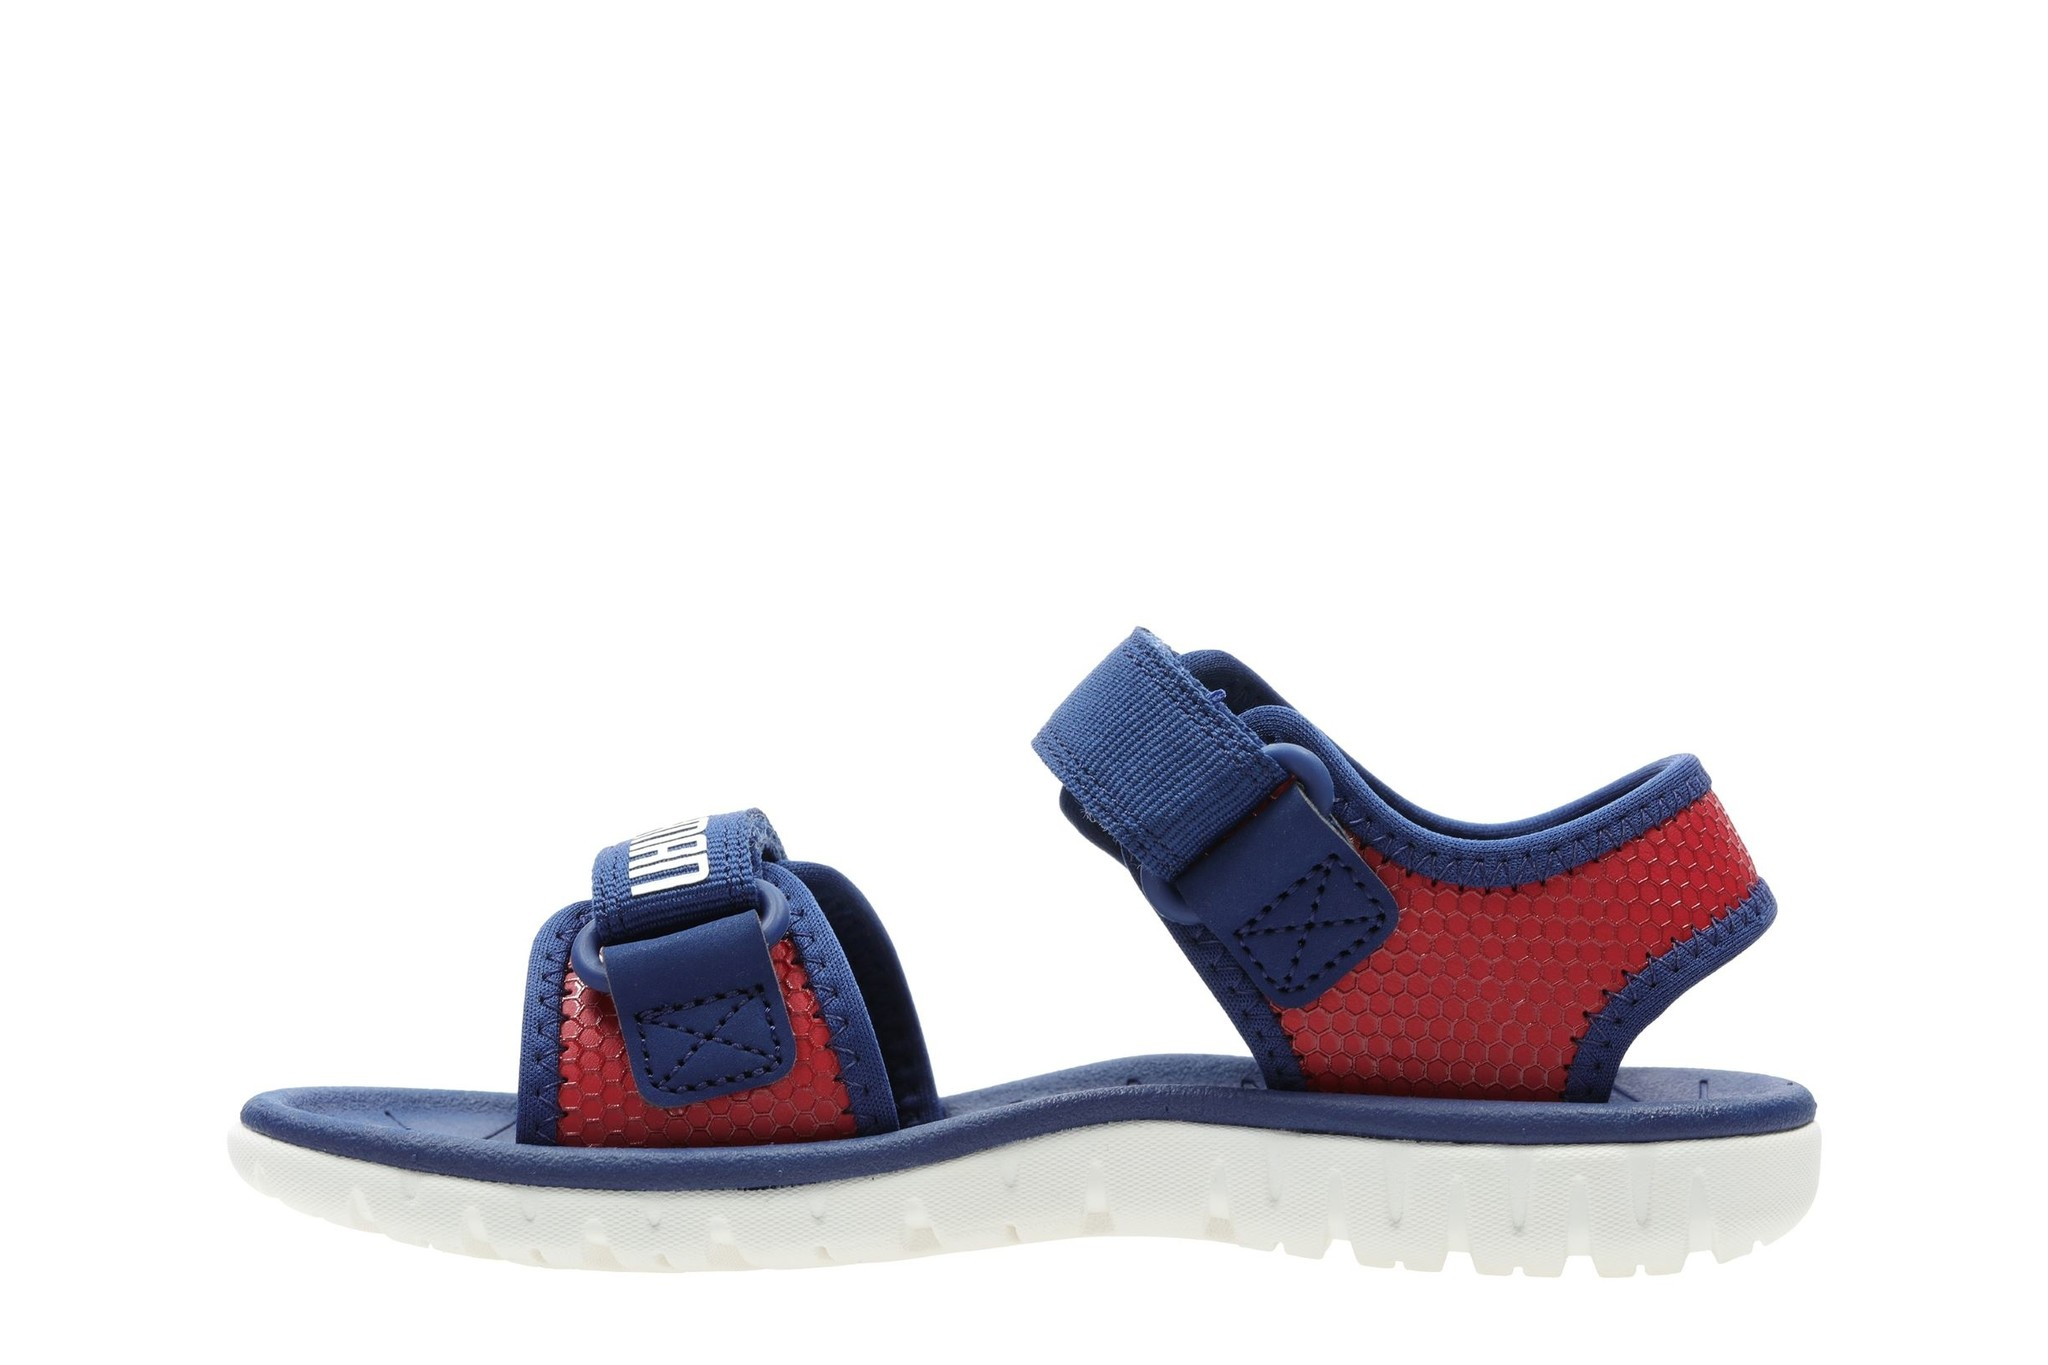 Clarks Surfing Web Red